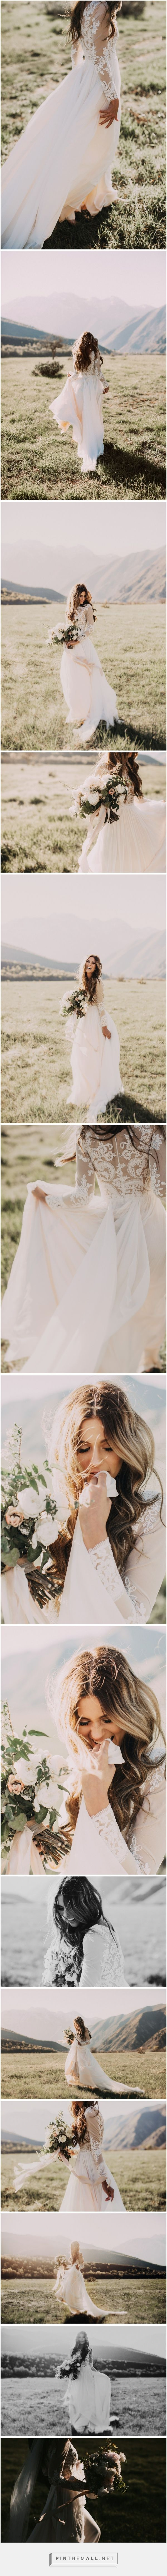 BEAUTIFULLY PERFECT BRIDAL PORTRAITS - UNPOSED!! LOVE THEM XX Gabby + Patrick : Mountain Bridals – India Earl Photography